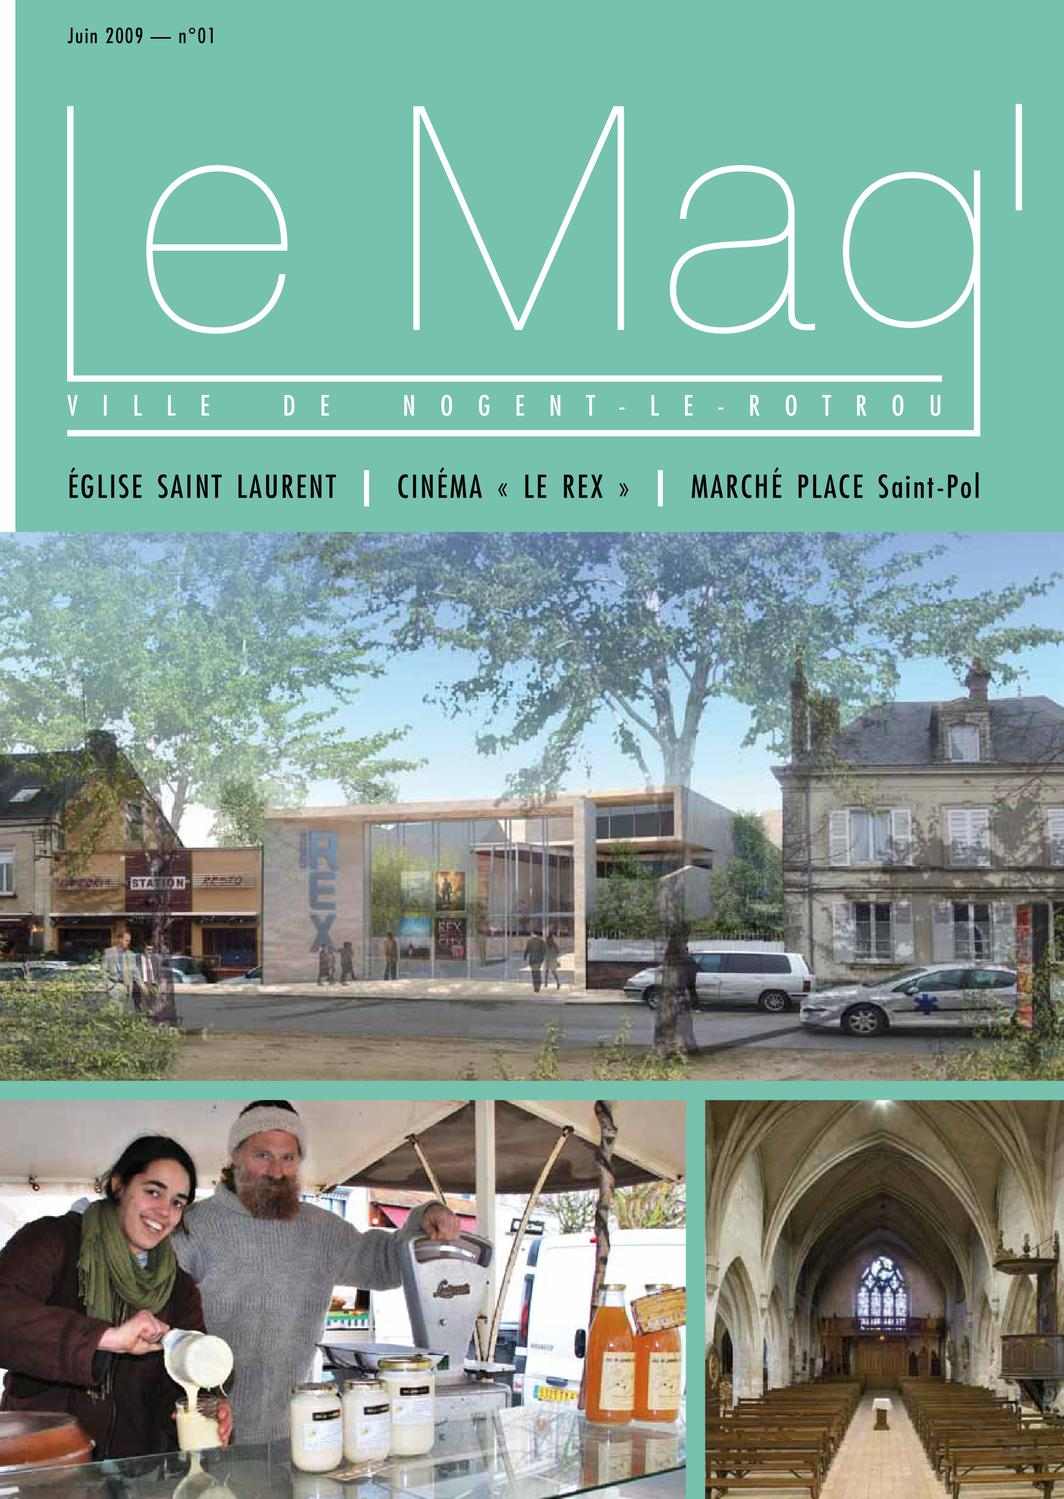 Lemag by philippe aubin issuu for Piscine de nogent le rotrou